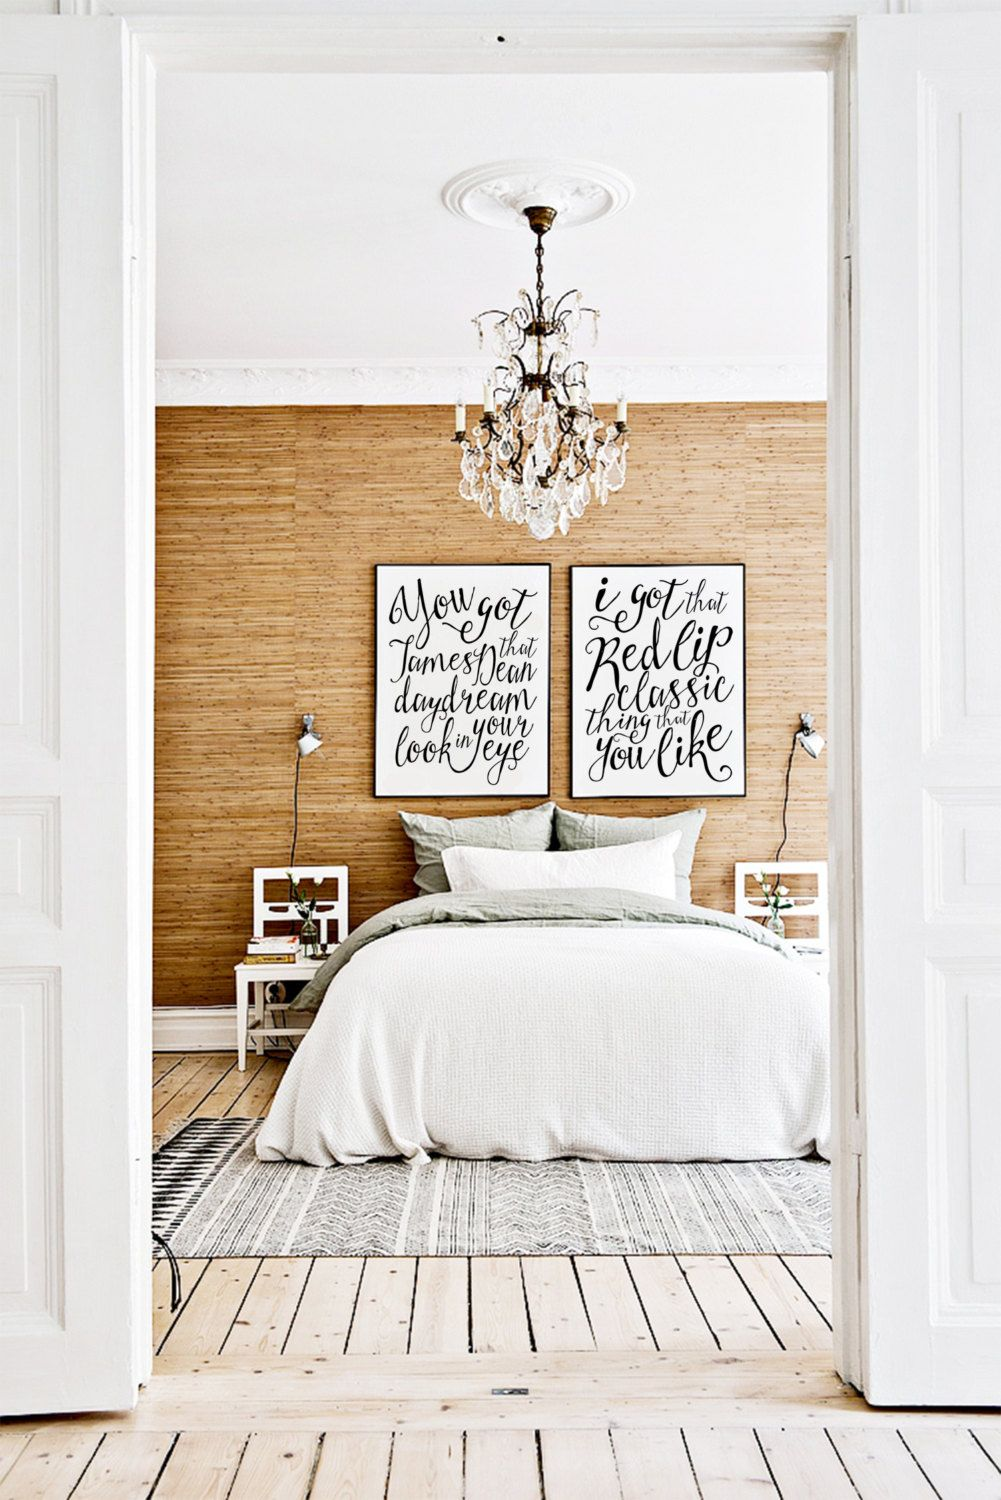 Master bedroom art above bed  Taylor Swift James Dean Daydream Look In Your by DesignsBySpec